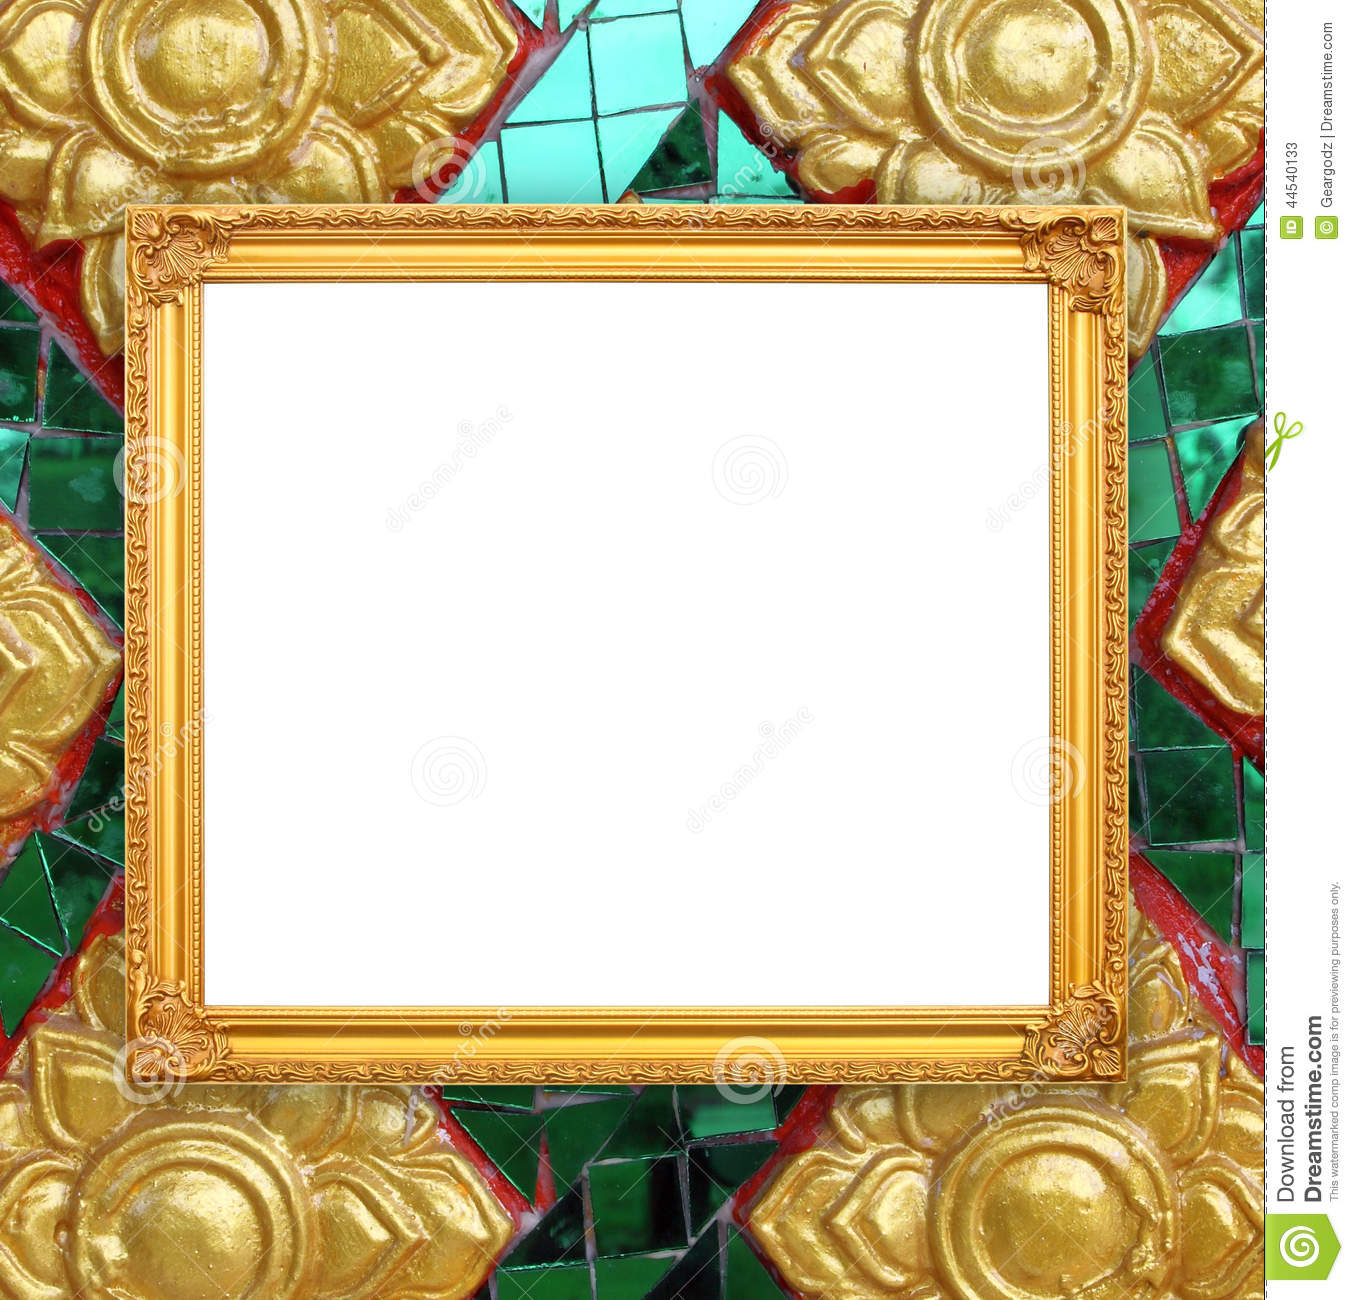 blank golden frame on thai style buddha wall stock photos